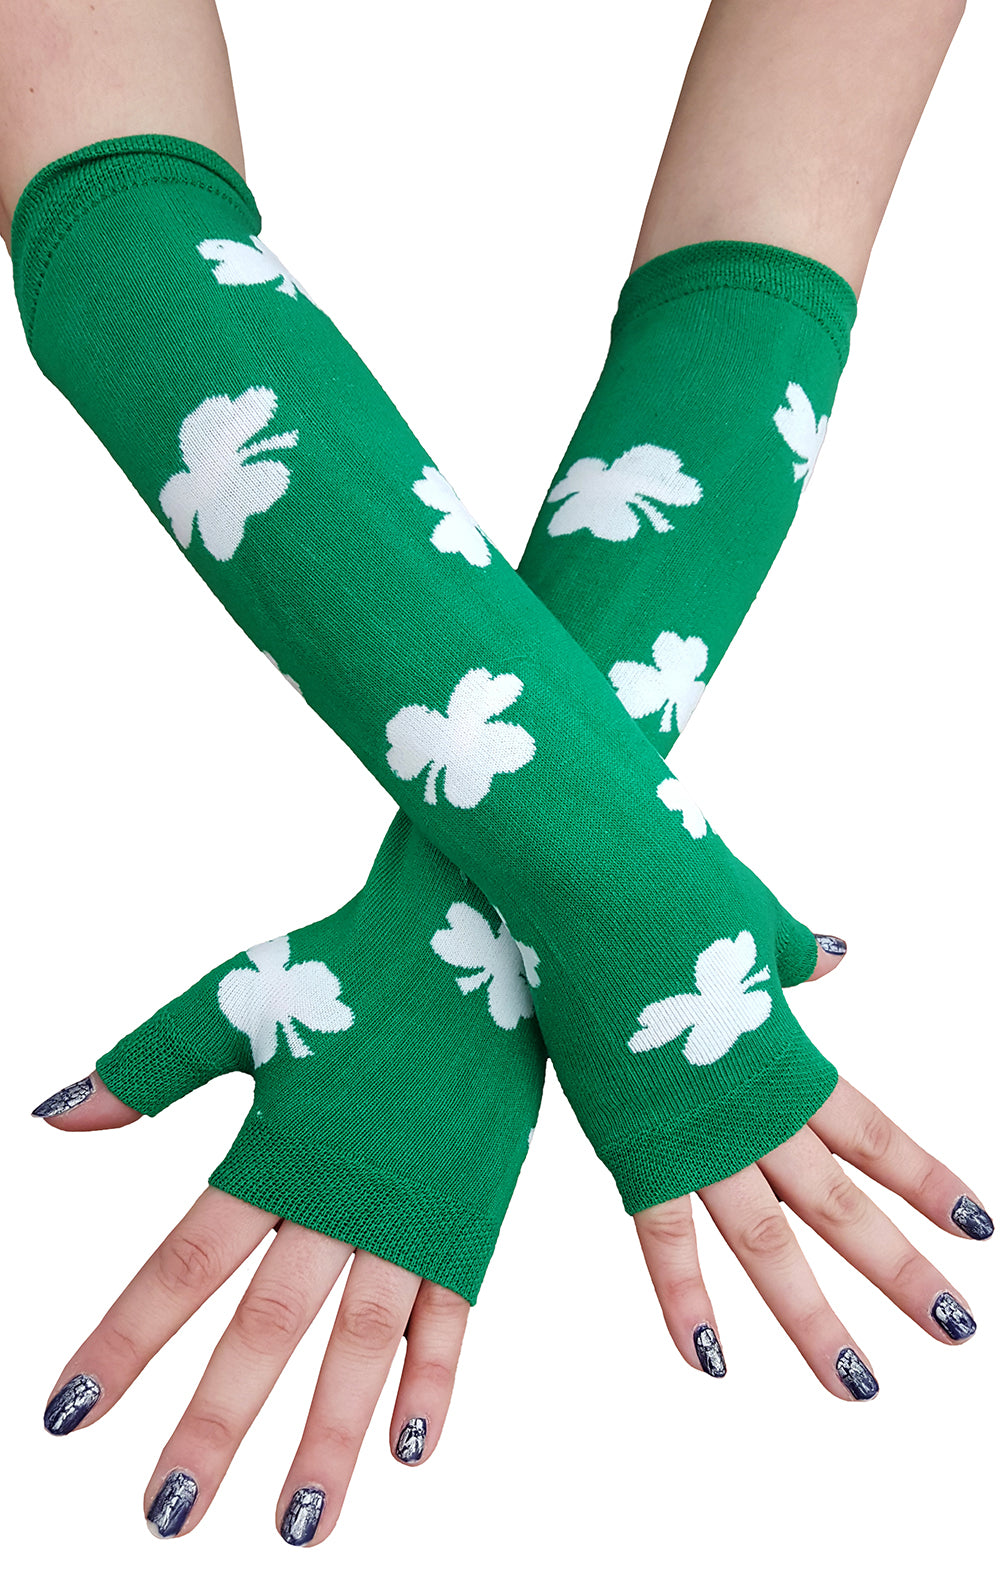 All Over Shamrocks Arm Warmers both Hand